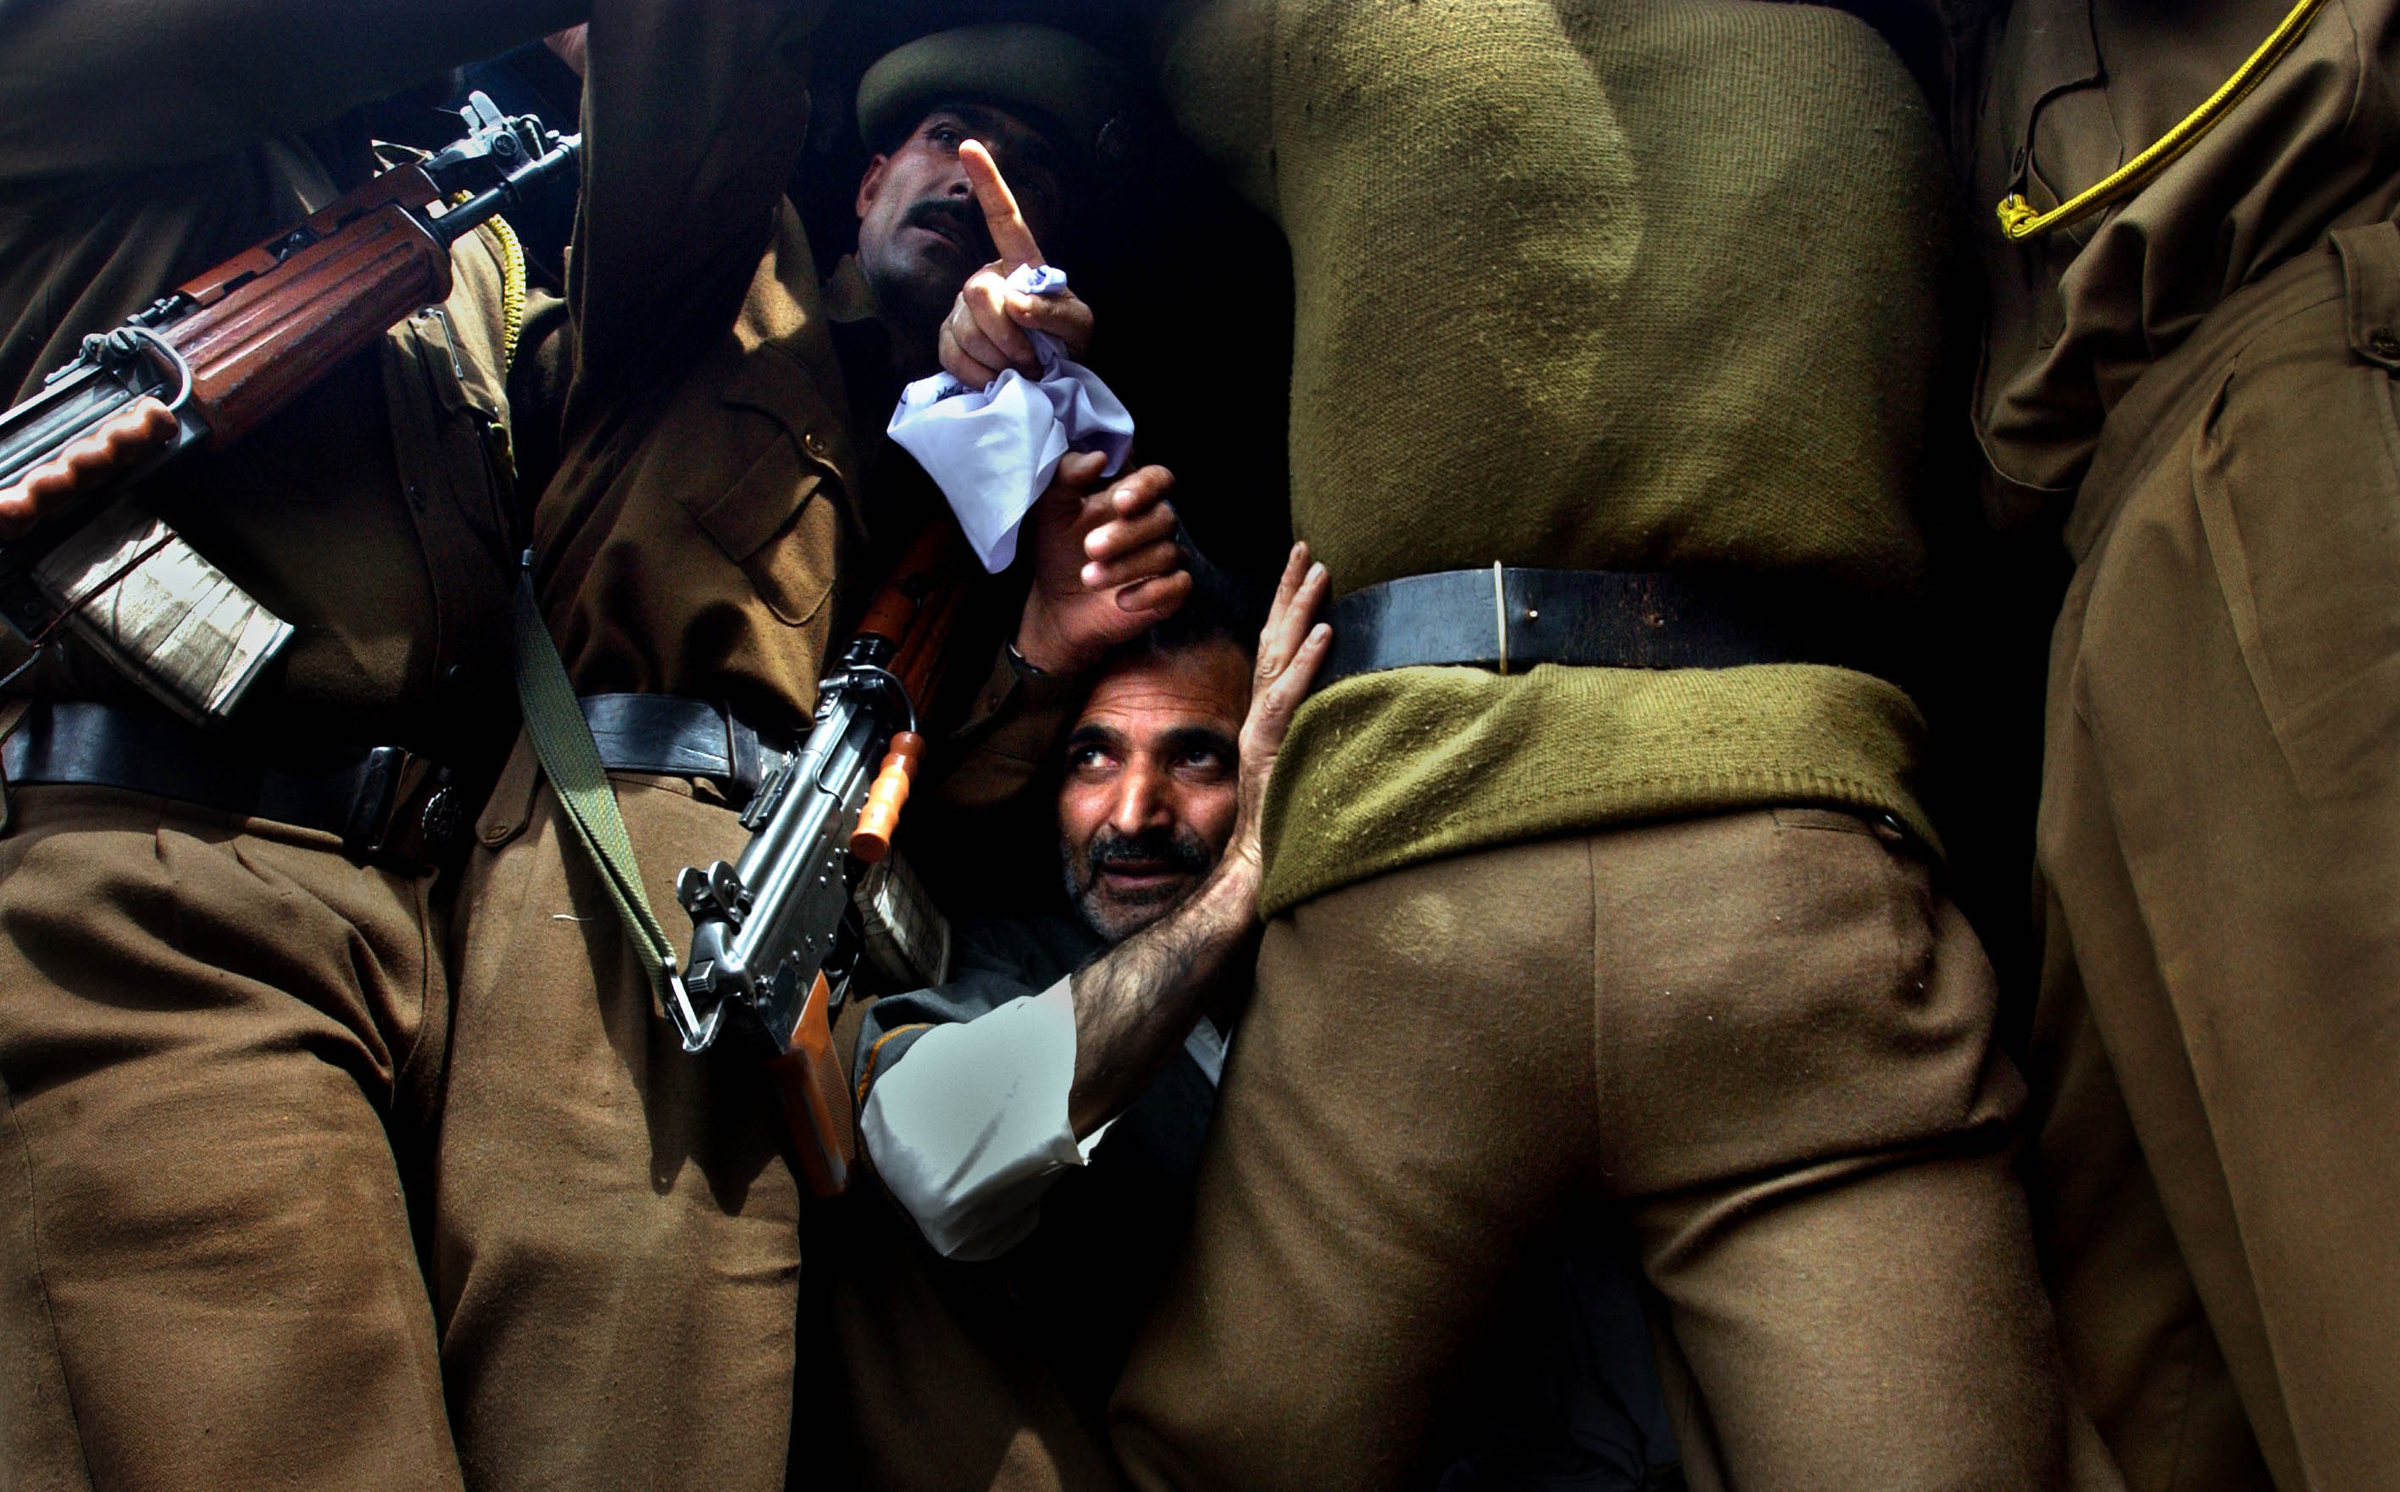 A Kashmiri  man sits inside a police van after he was arrested by Jammu and Kashmir police for protesting with the Association of Parents of Disappeared Persons (APDP) in Srinagar, the summer capital of Indian held Jammu and Kashmir state in India. 2004   © Ami Vitale